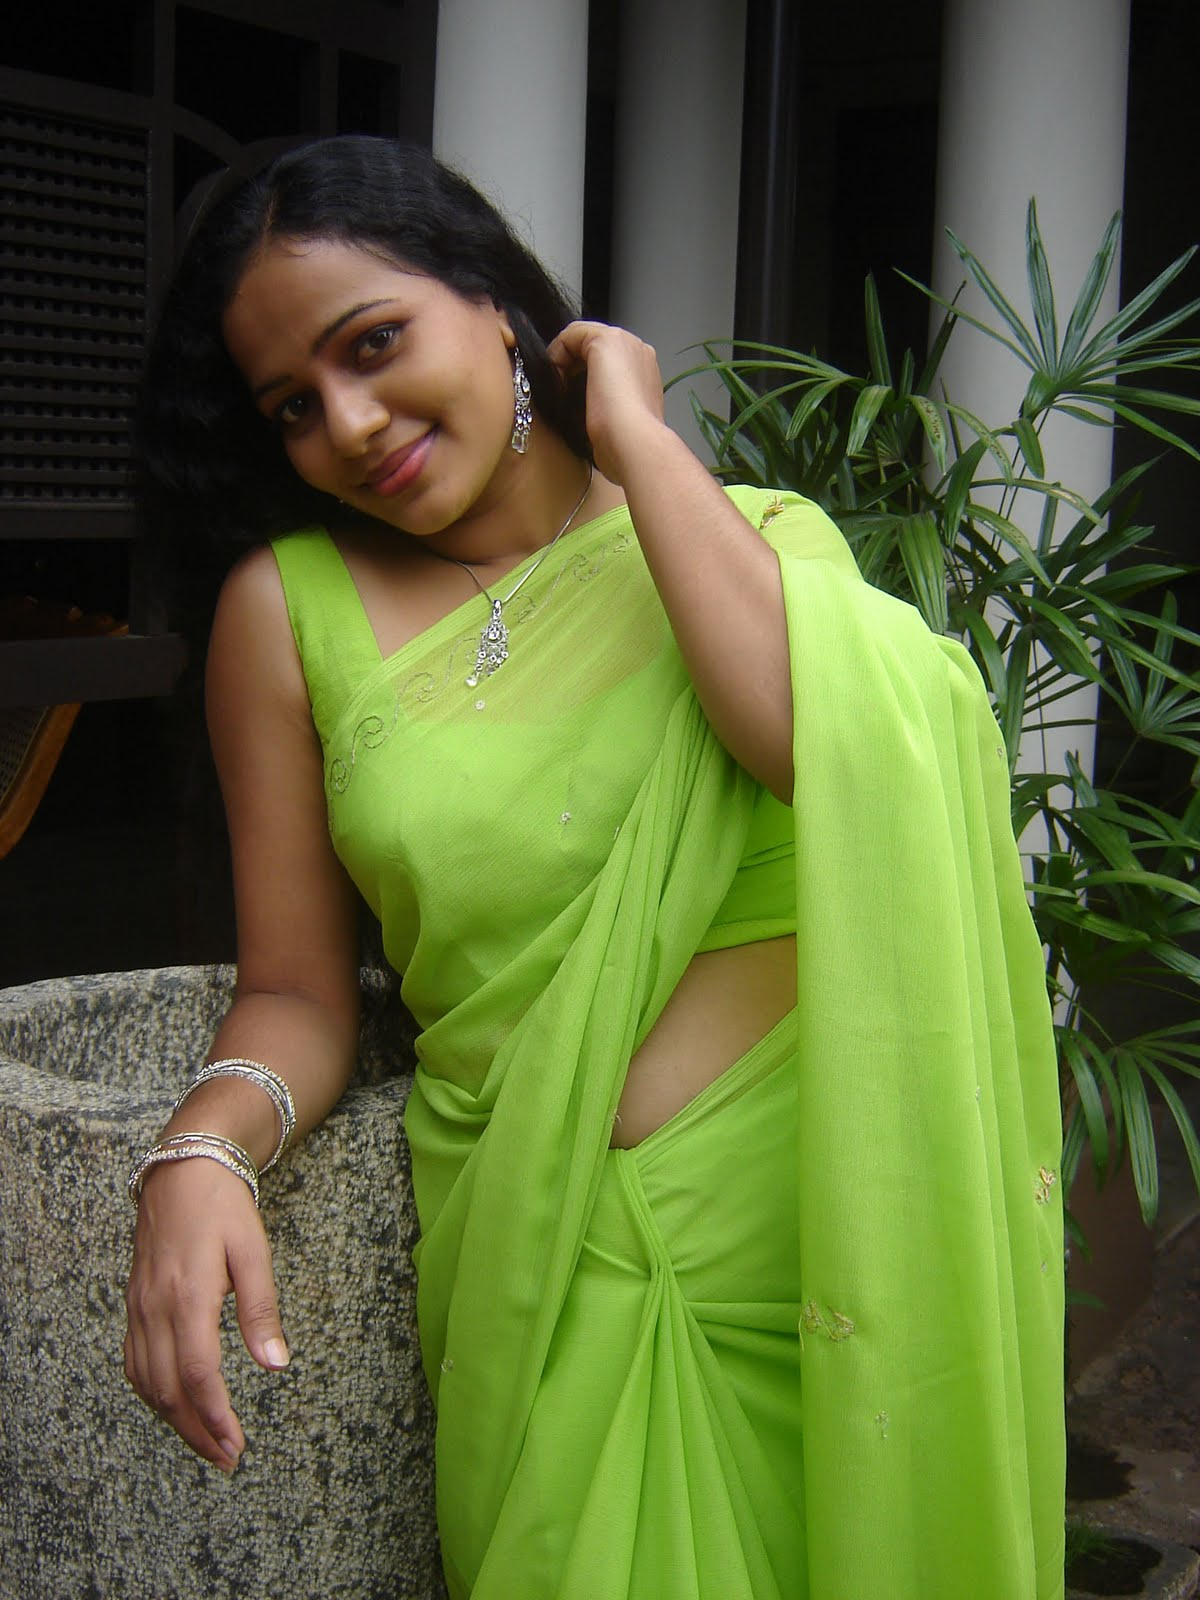 hot srilankan actress pics